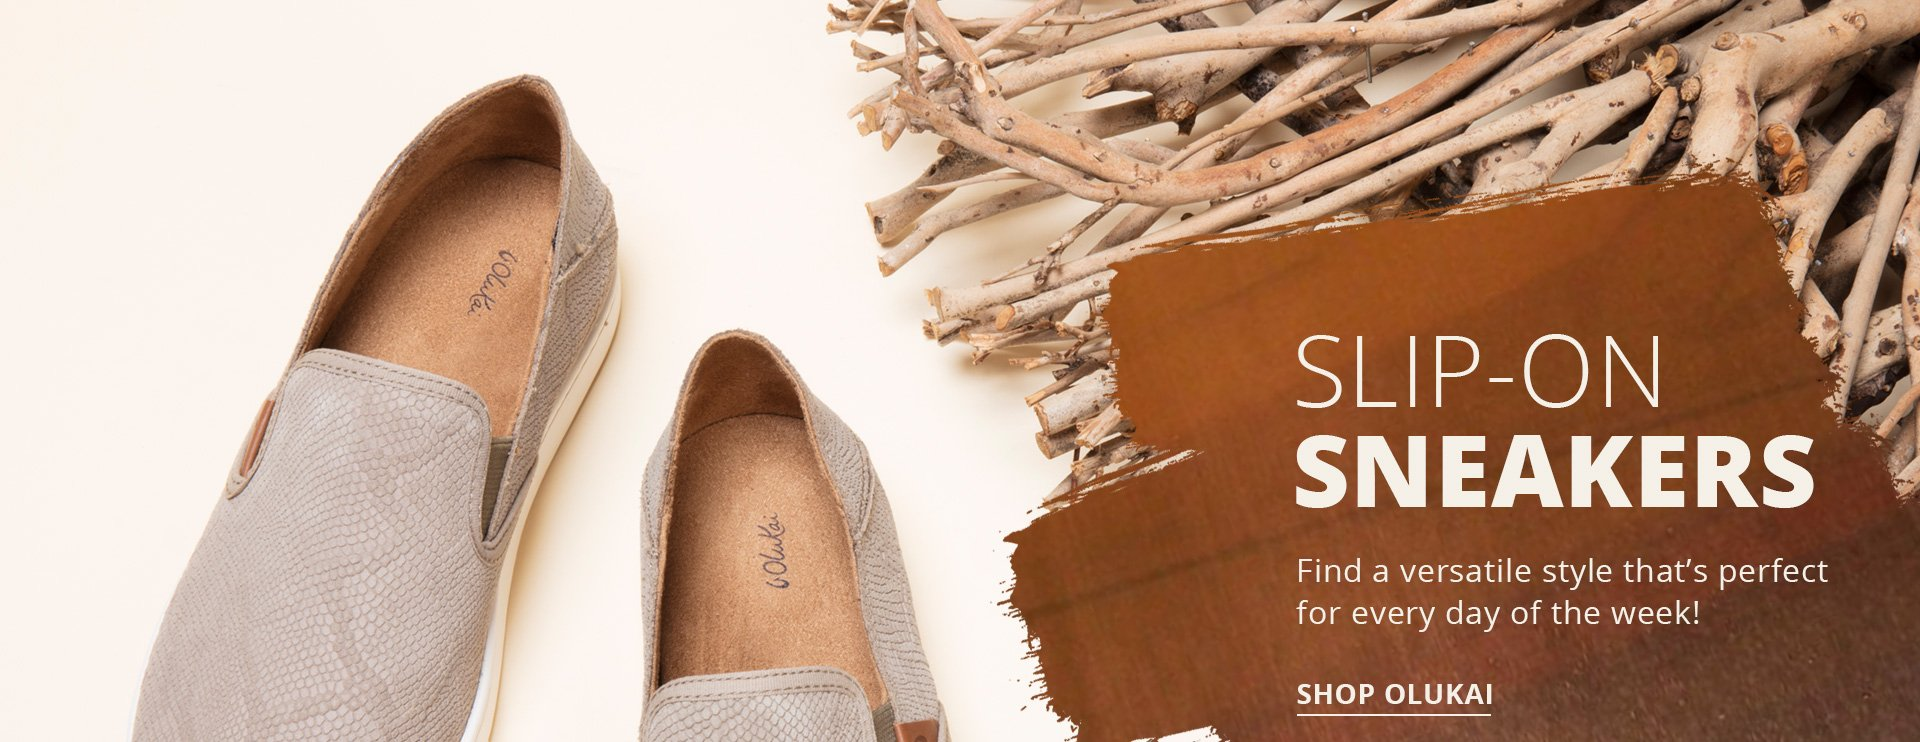 Slip-on sneakers. Find versatile style that's perfect for every day of the week! Shop Olukai.